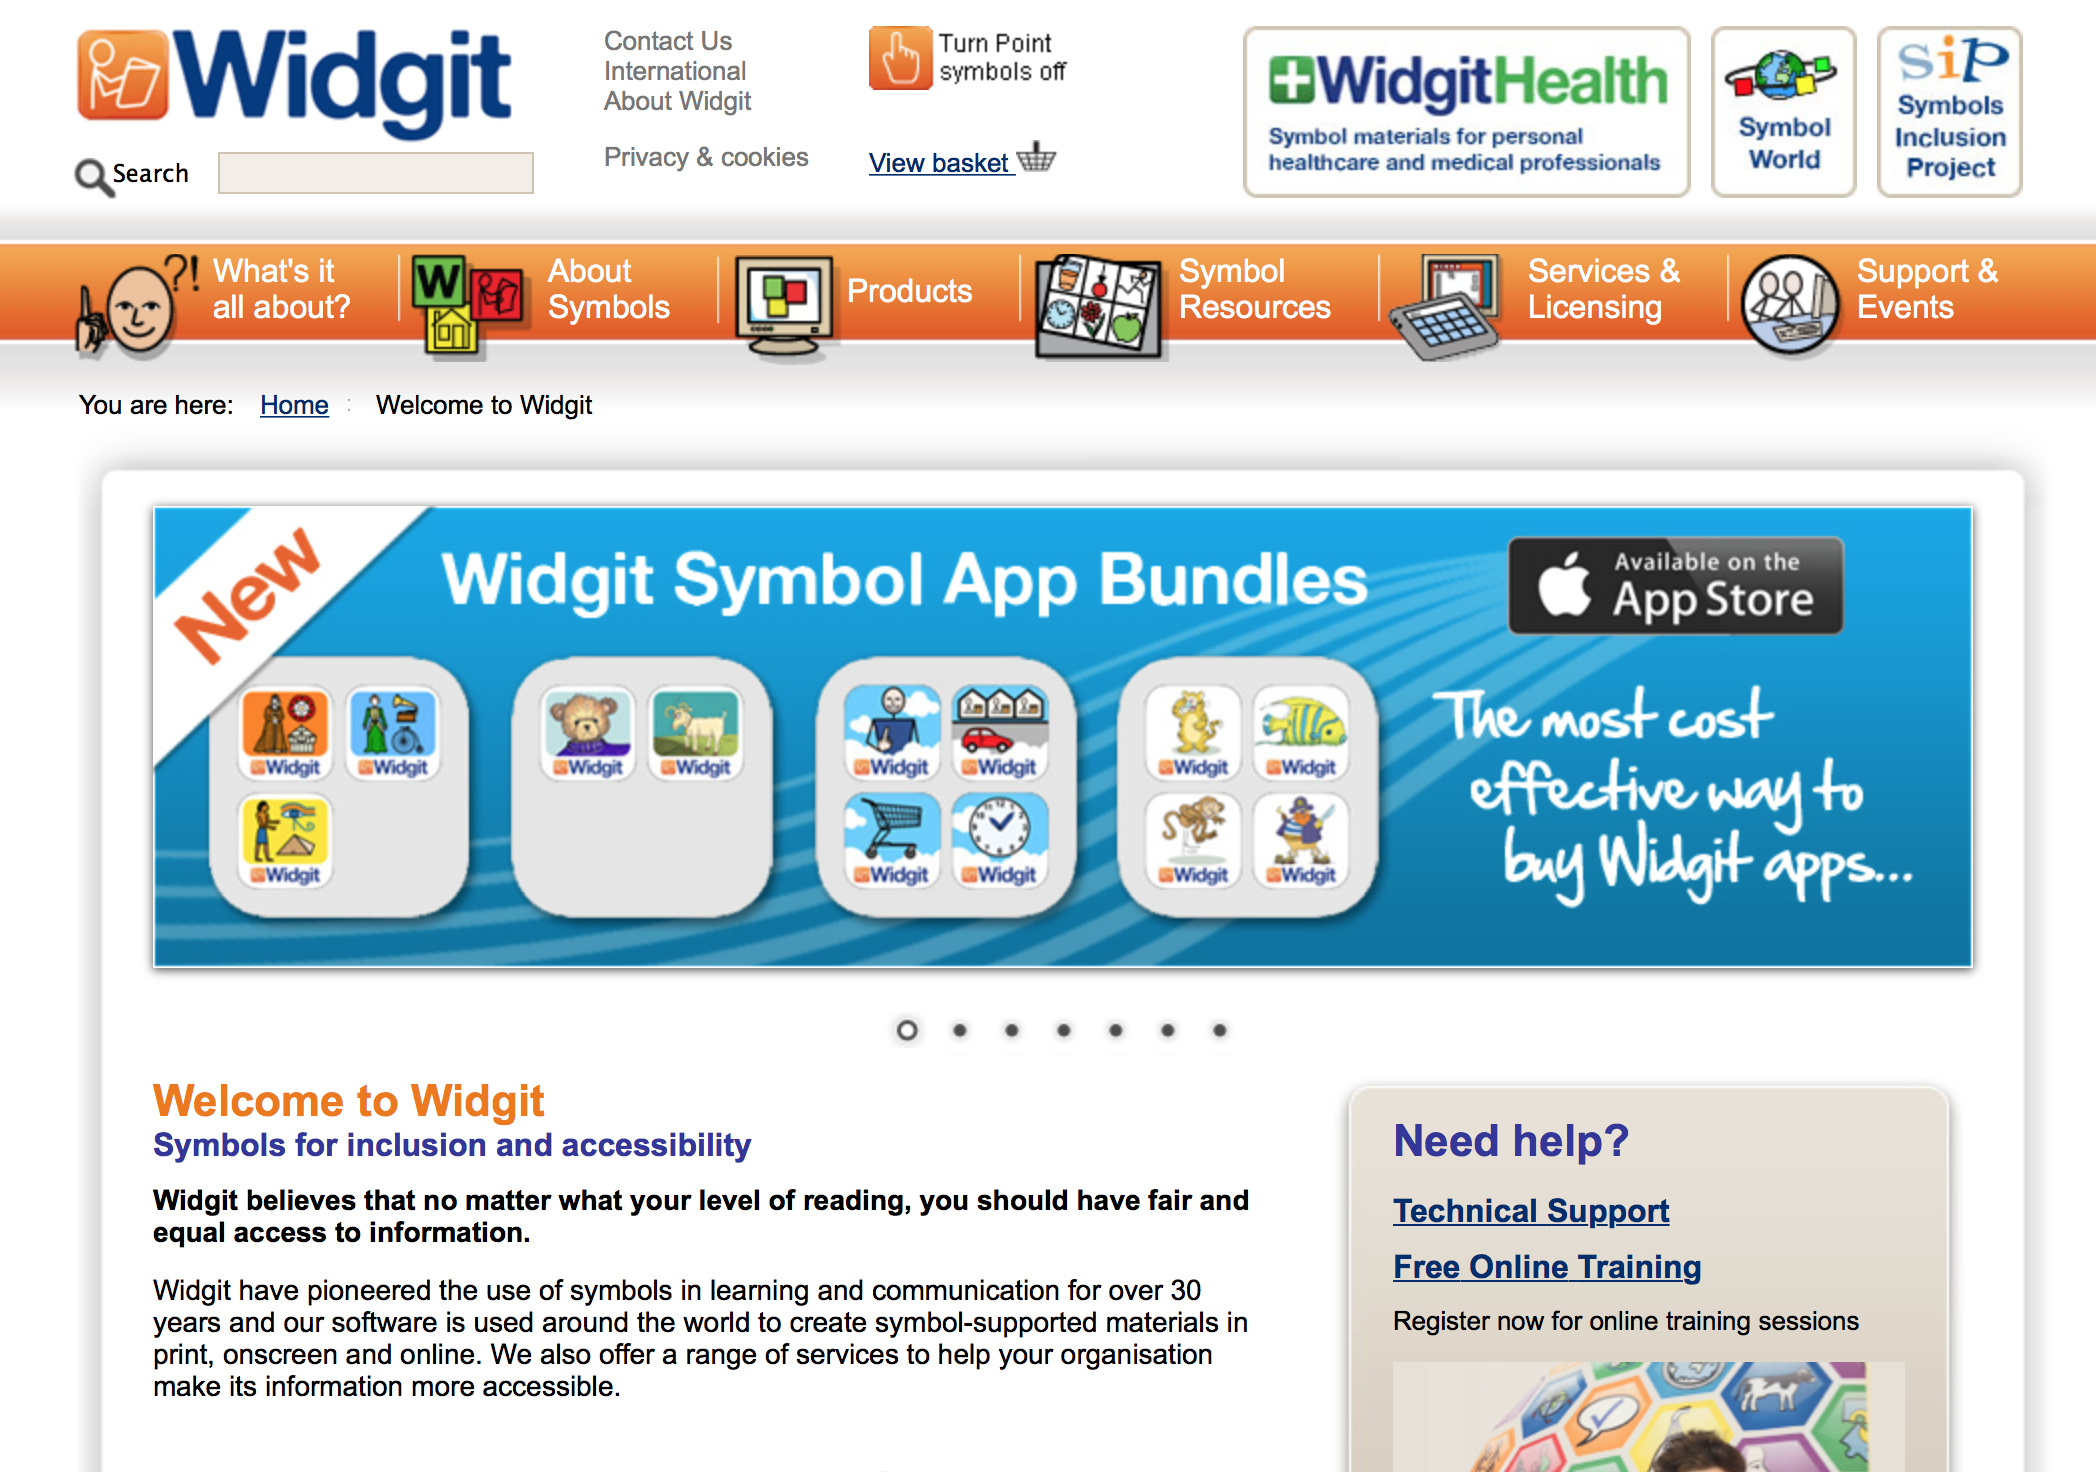 Welcome To Widgit - Symbols For Inclusion And Accessibility - Free Printable Widgit Symbols